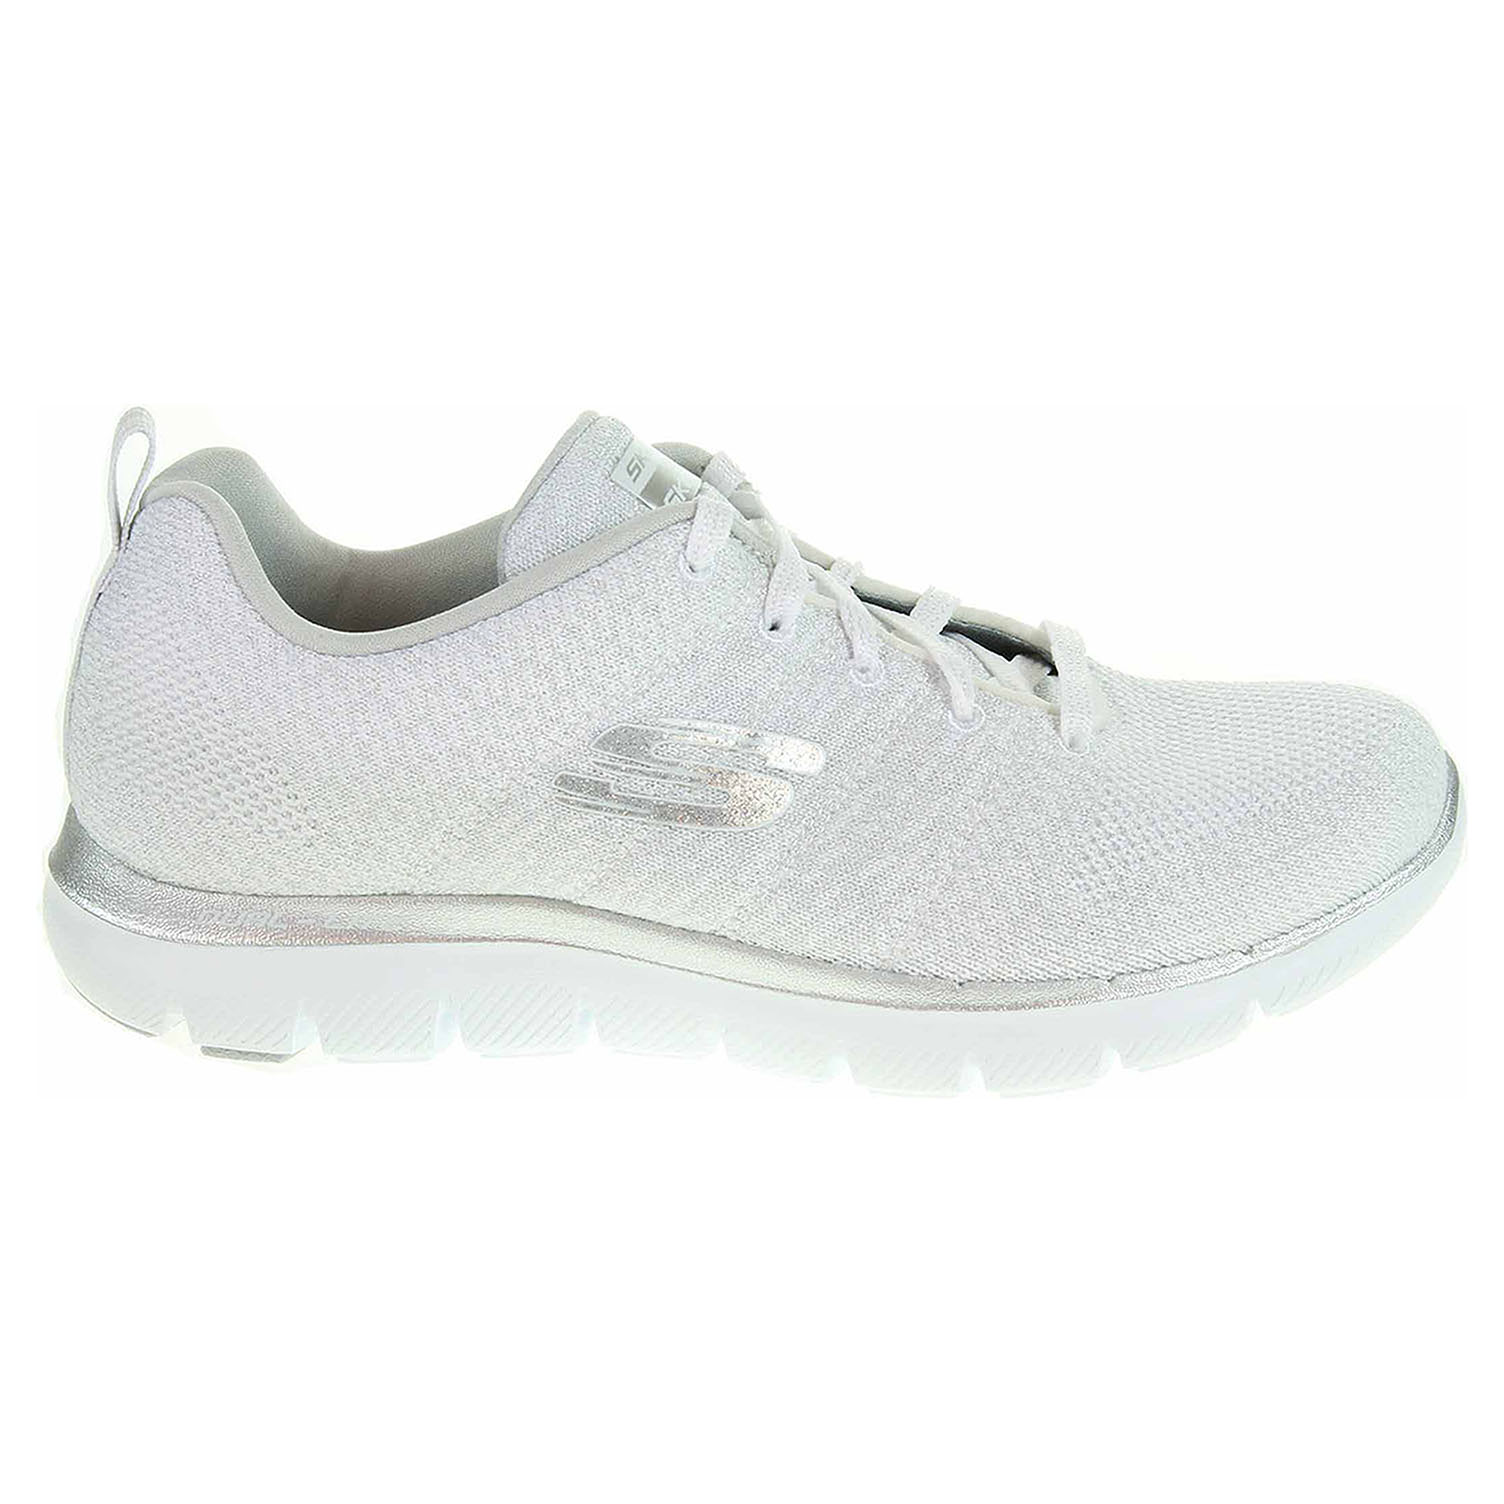 Ecco Skechers Flex Appeal 2.0 - Opening Night white-silver 23900194 da95d67893